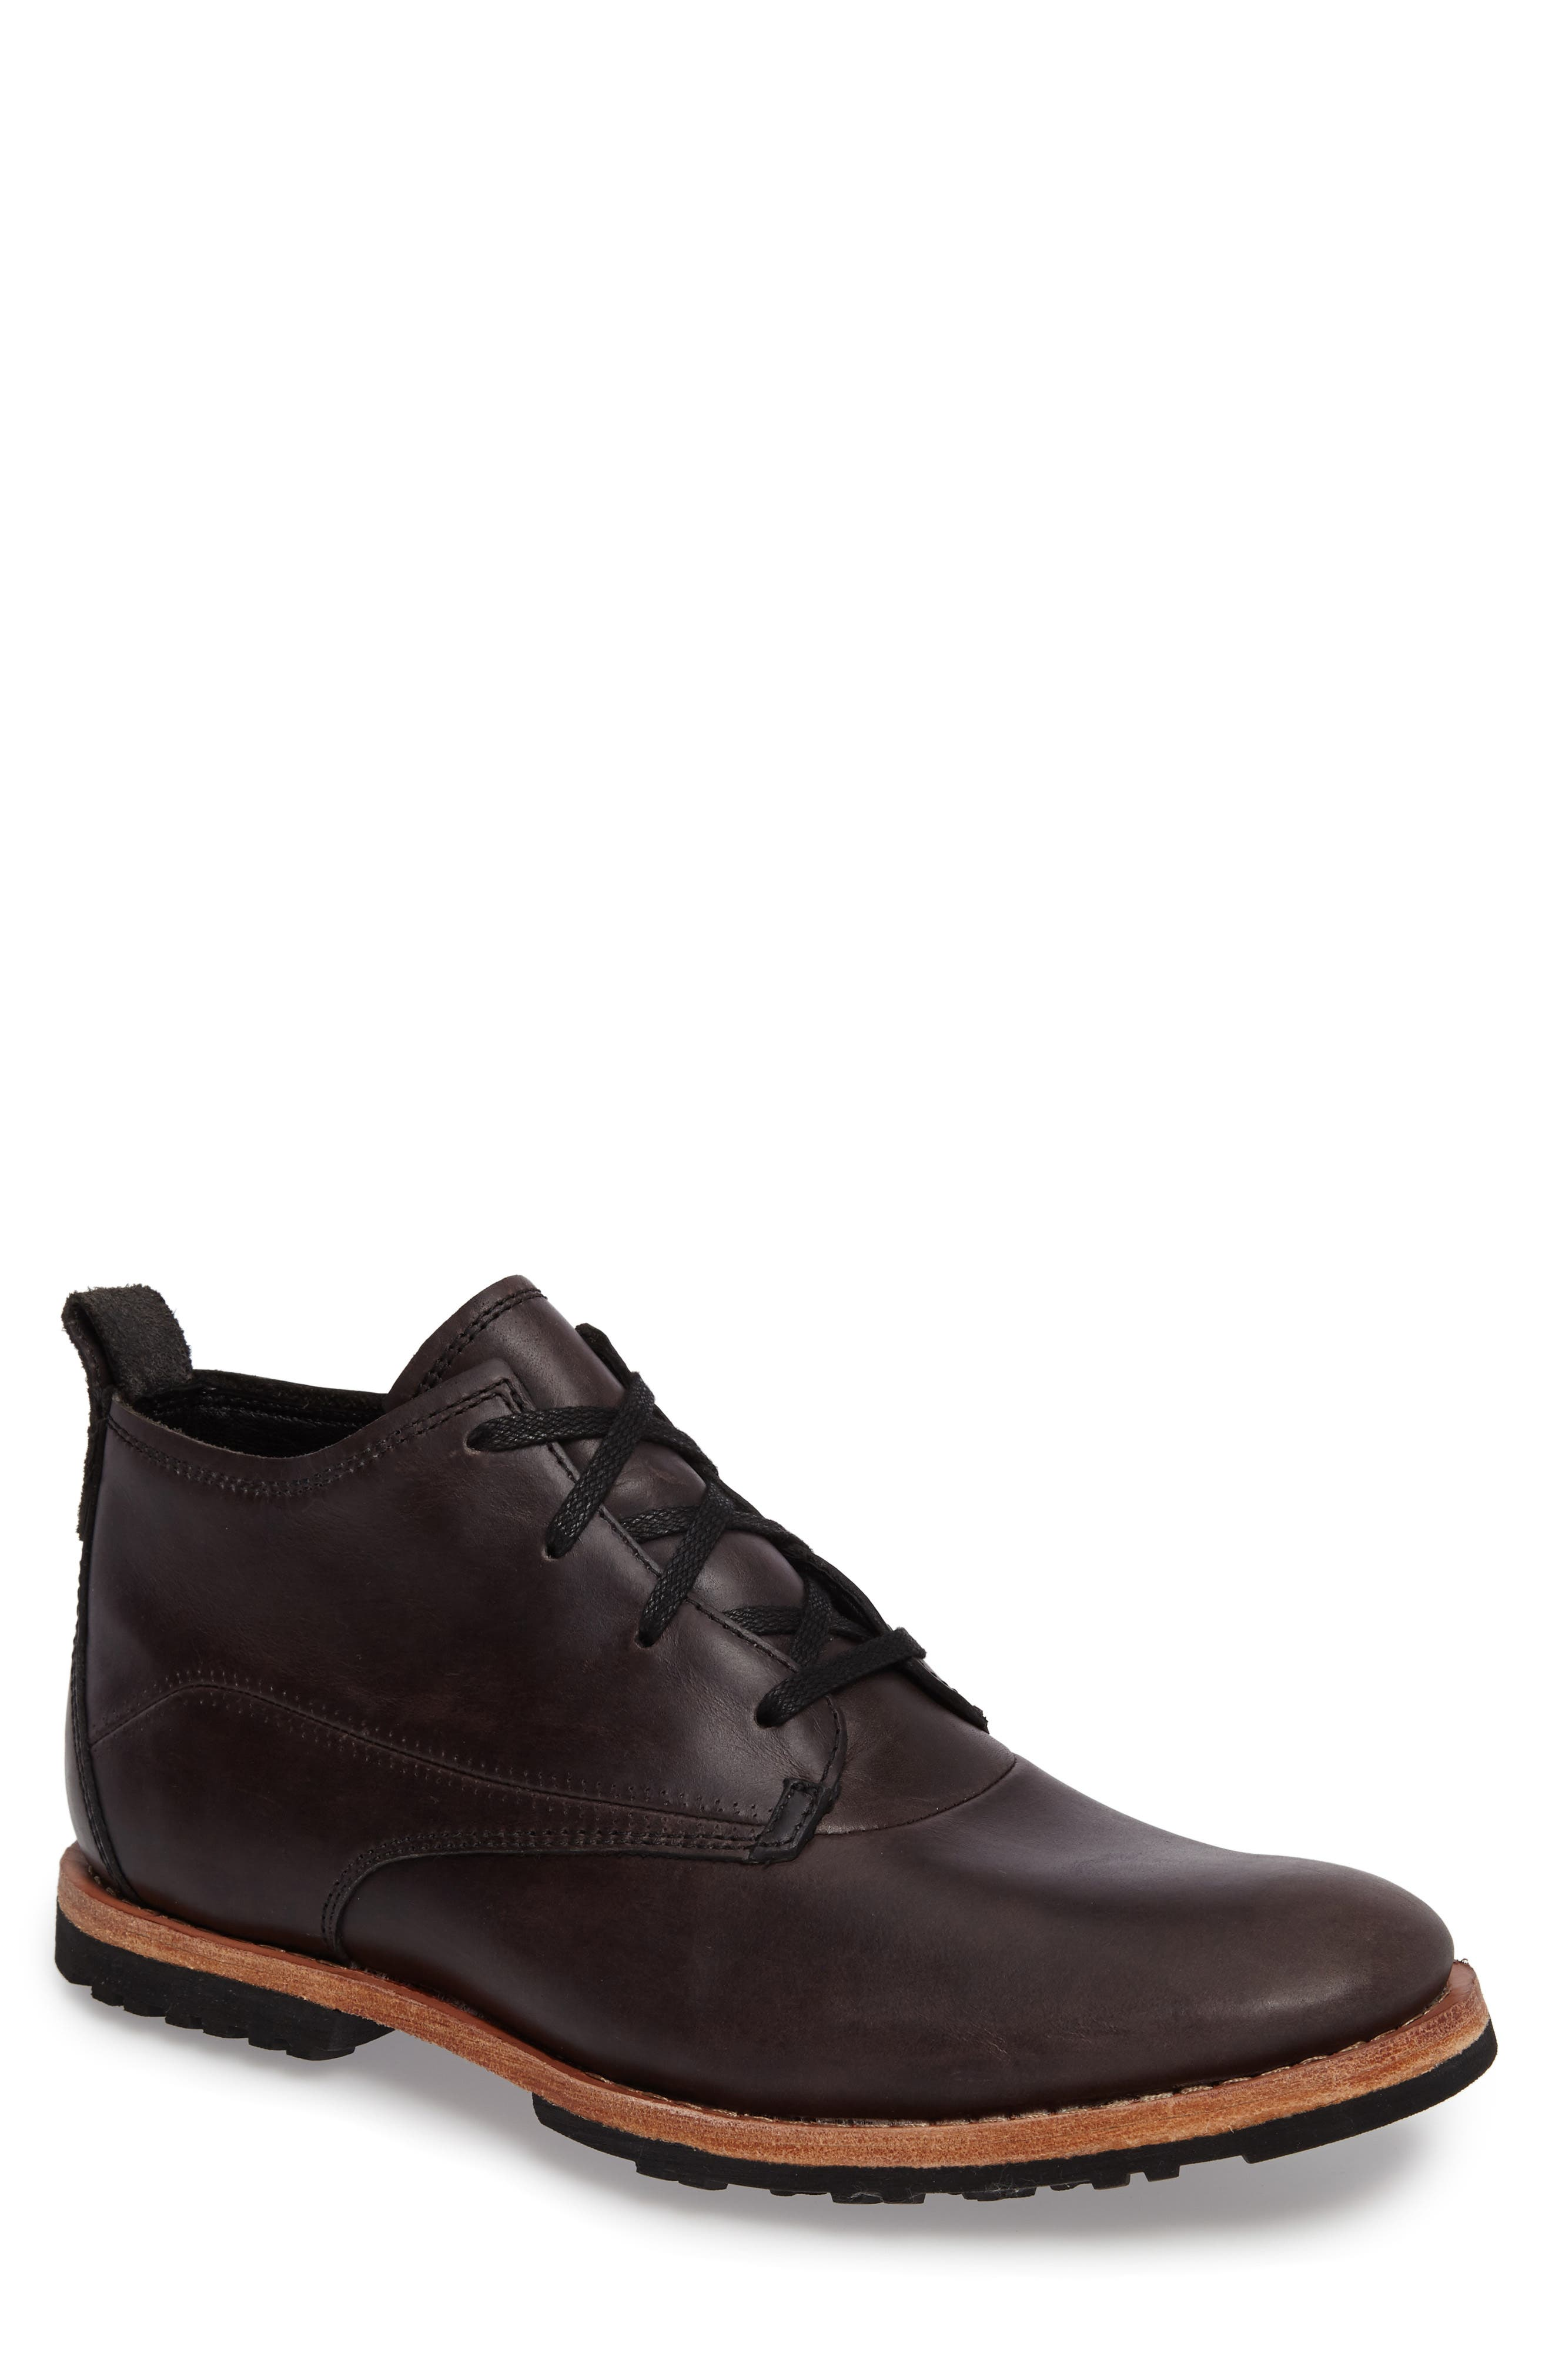 'Bardstown' Chukka Boot,                             Main thumbnail 1, color,                             002